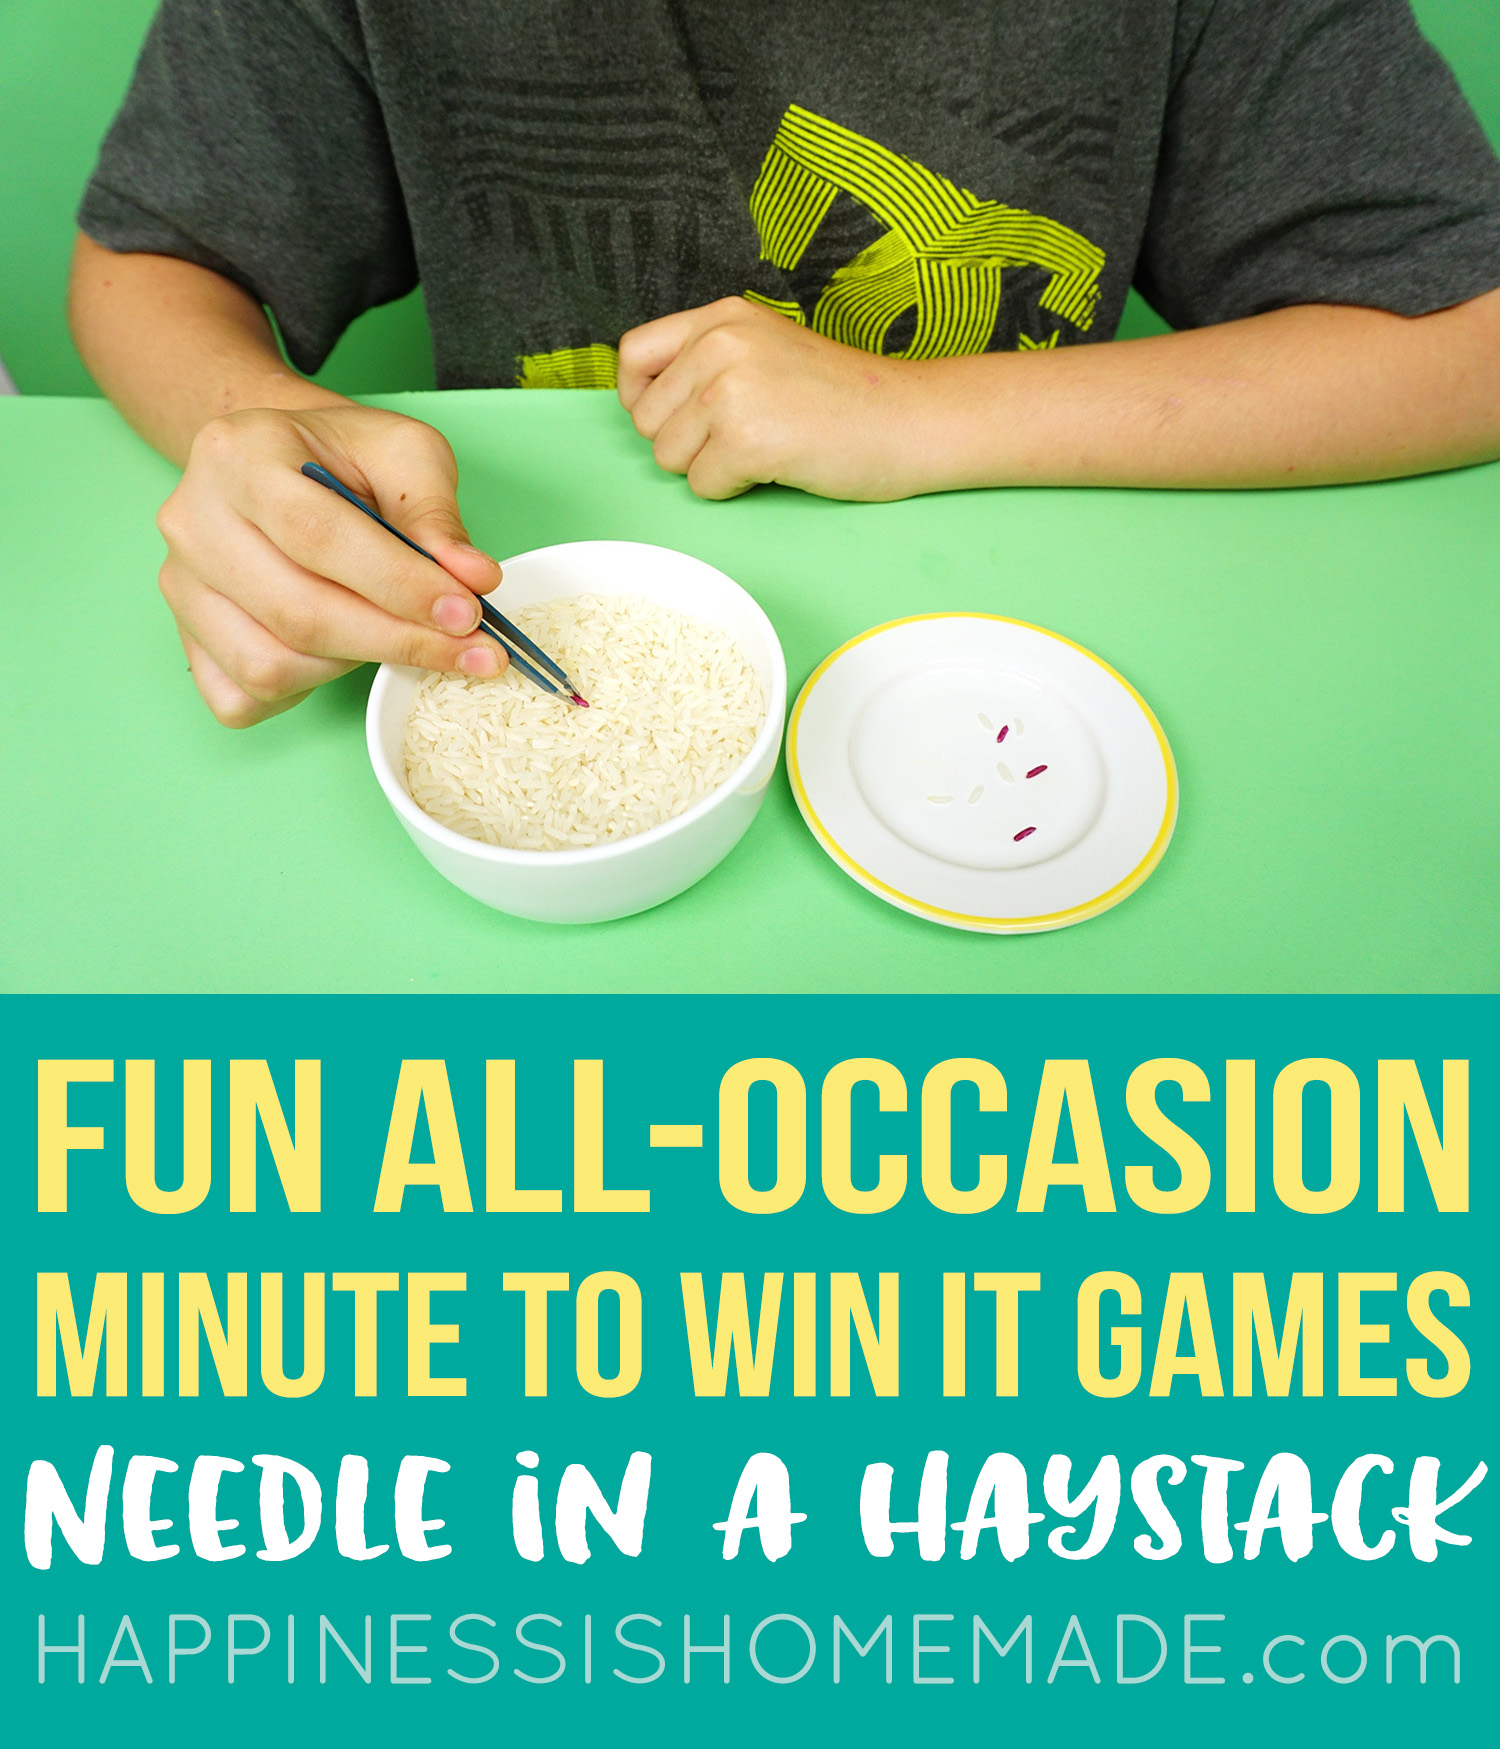 Fun Minute to Win It Games - Needle in a Haystack